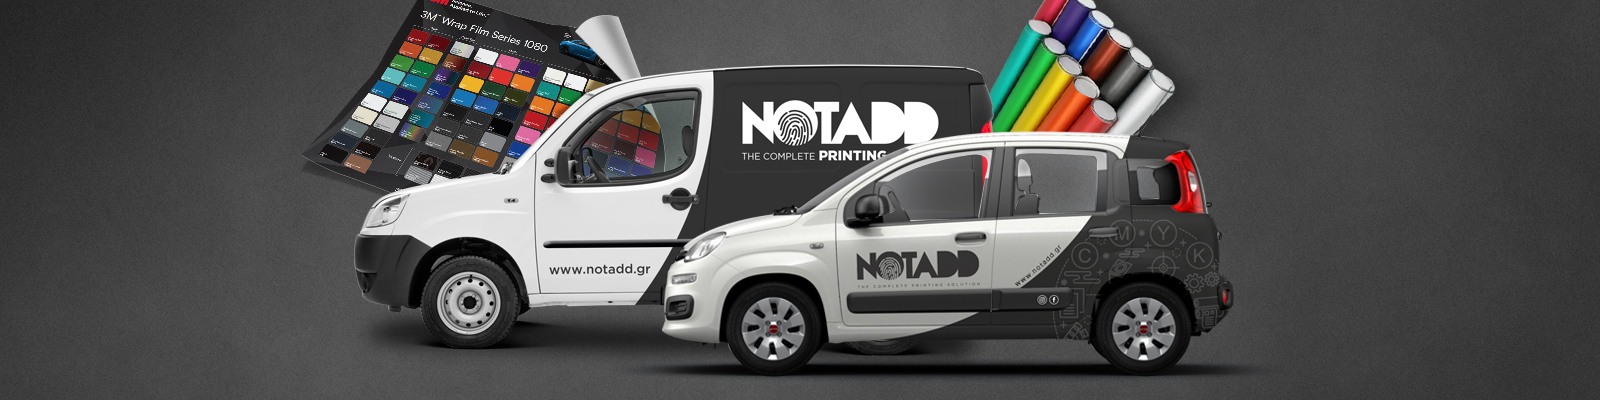 notadd-car-wraping